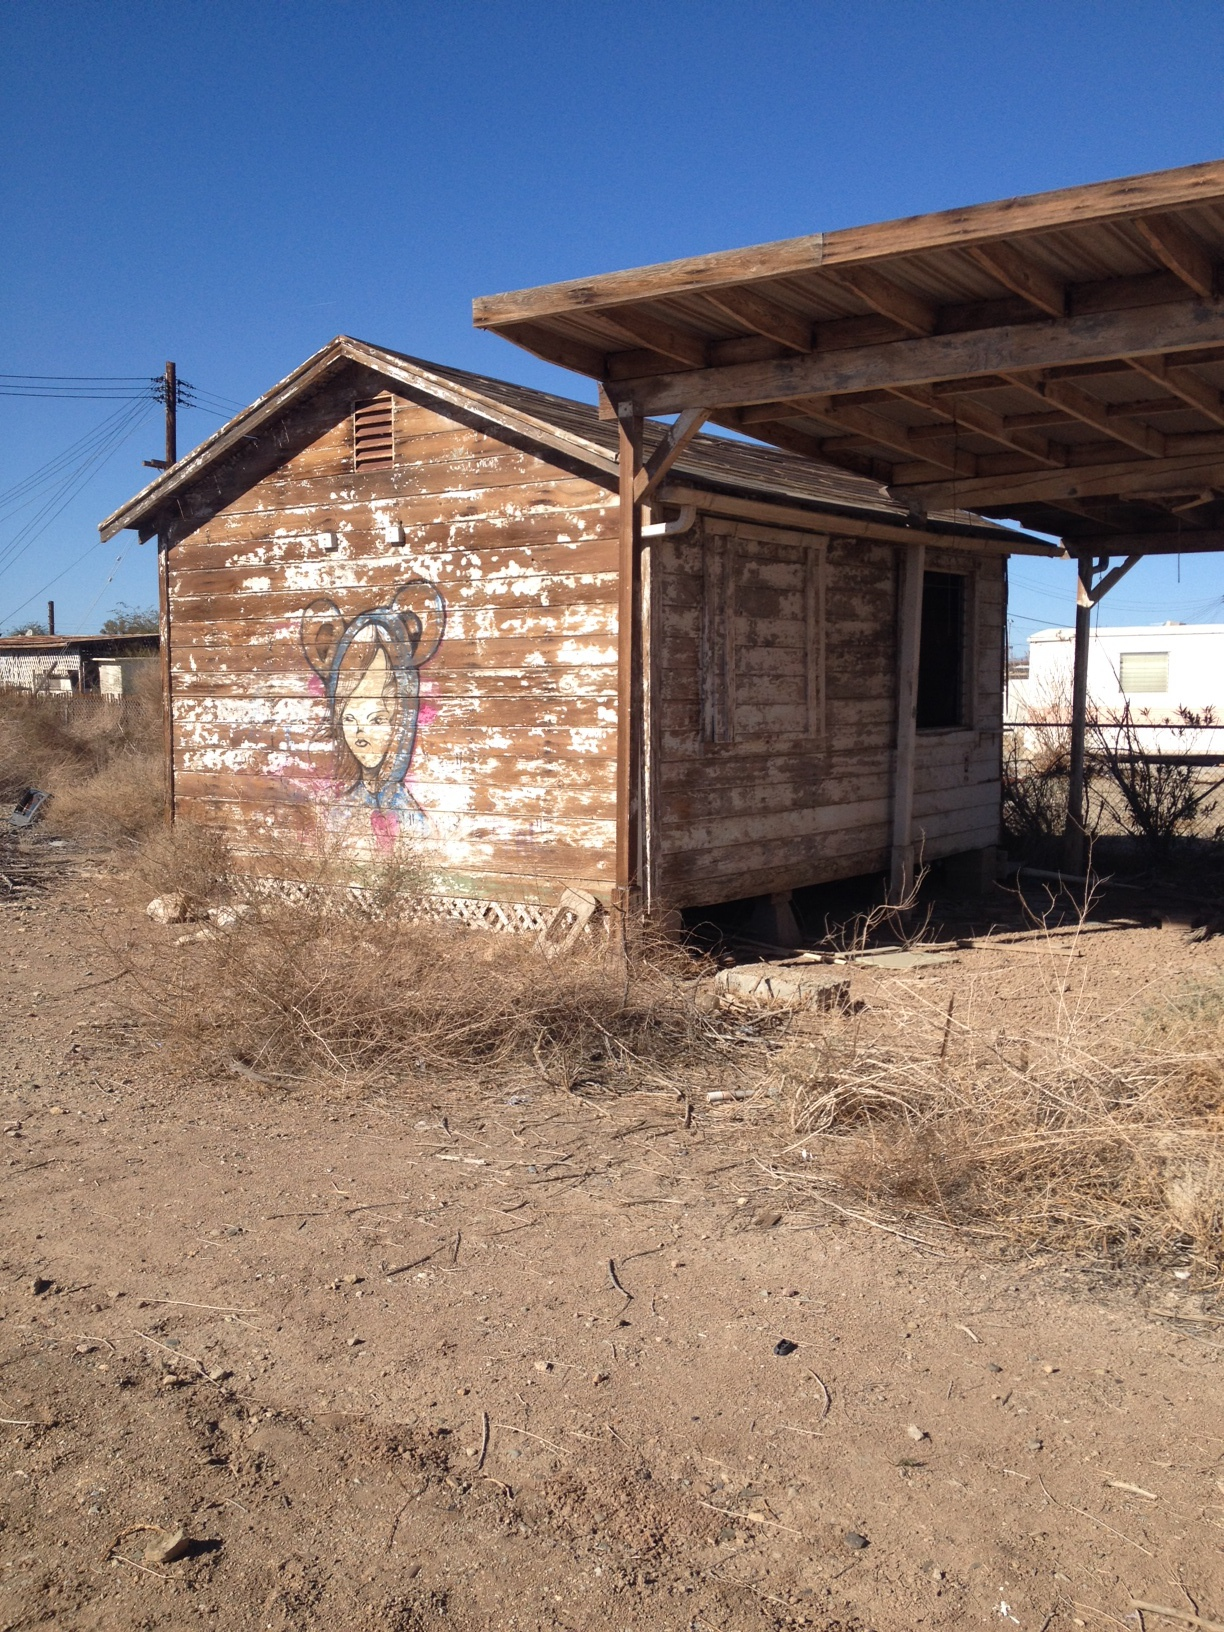 Graffiti in Bombay Beach